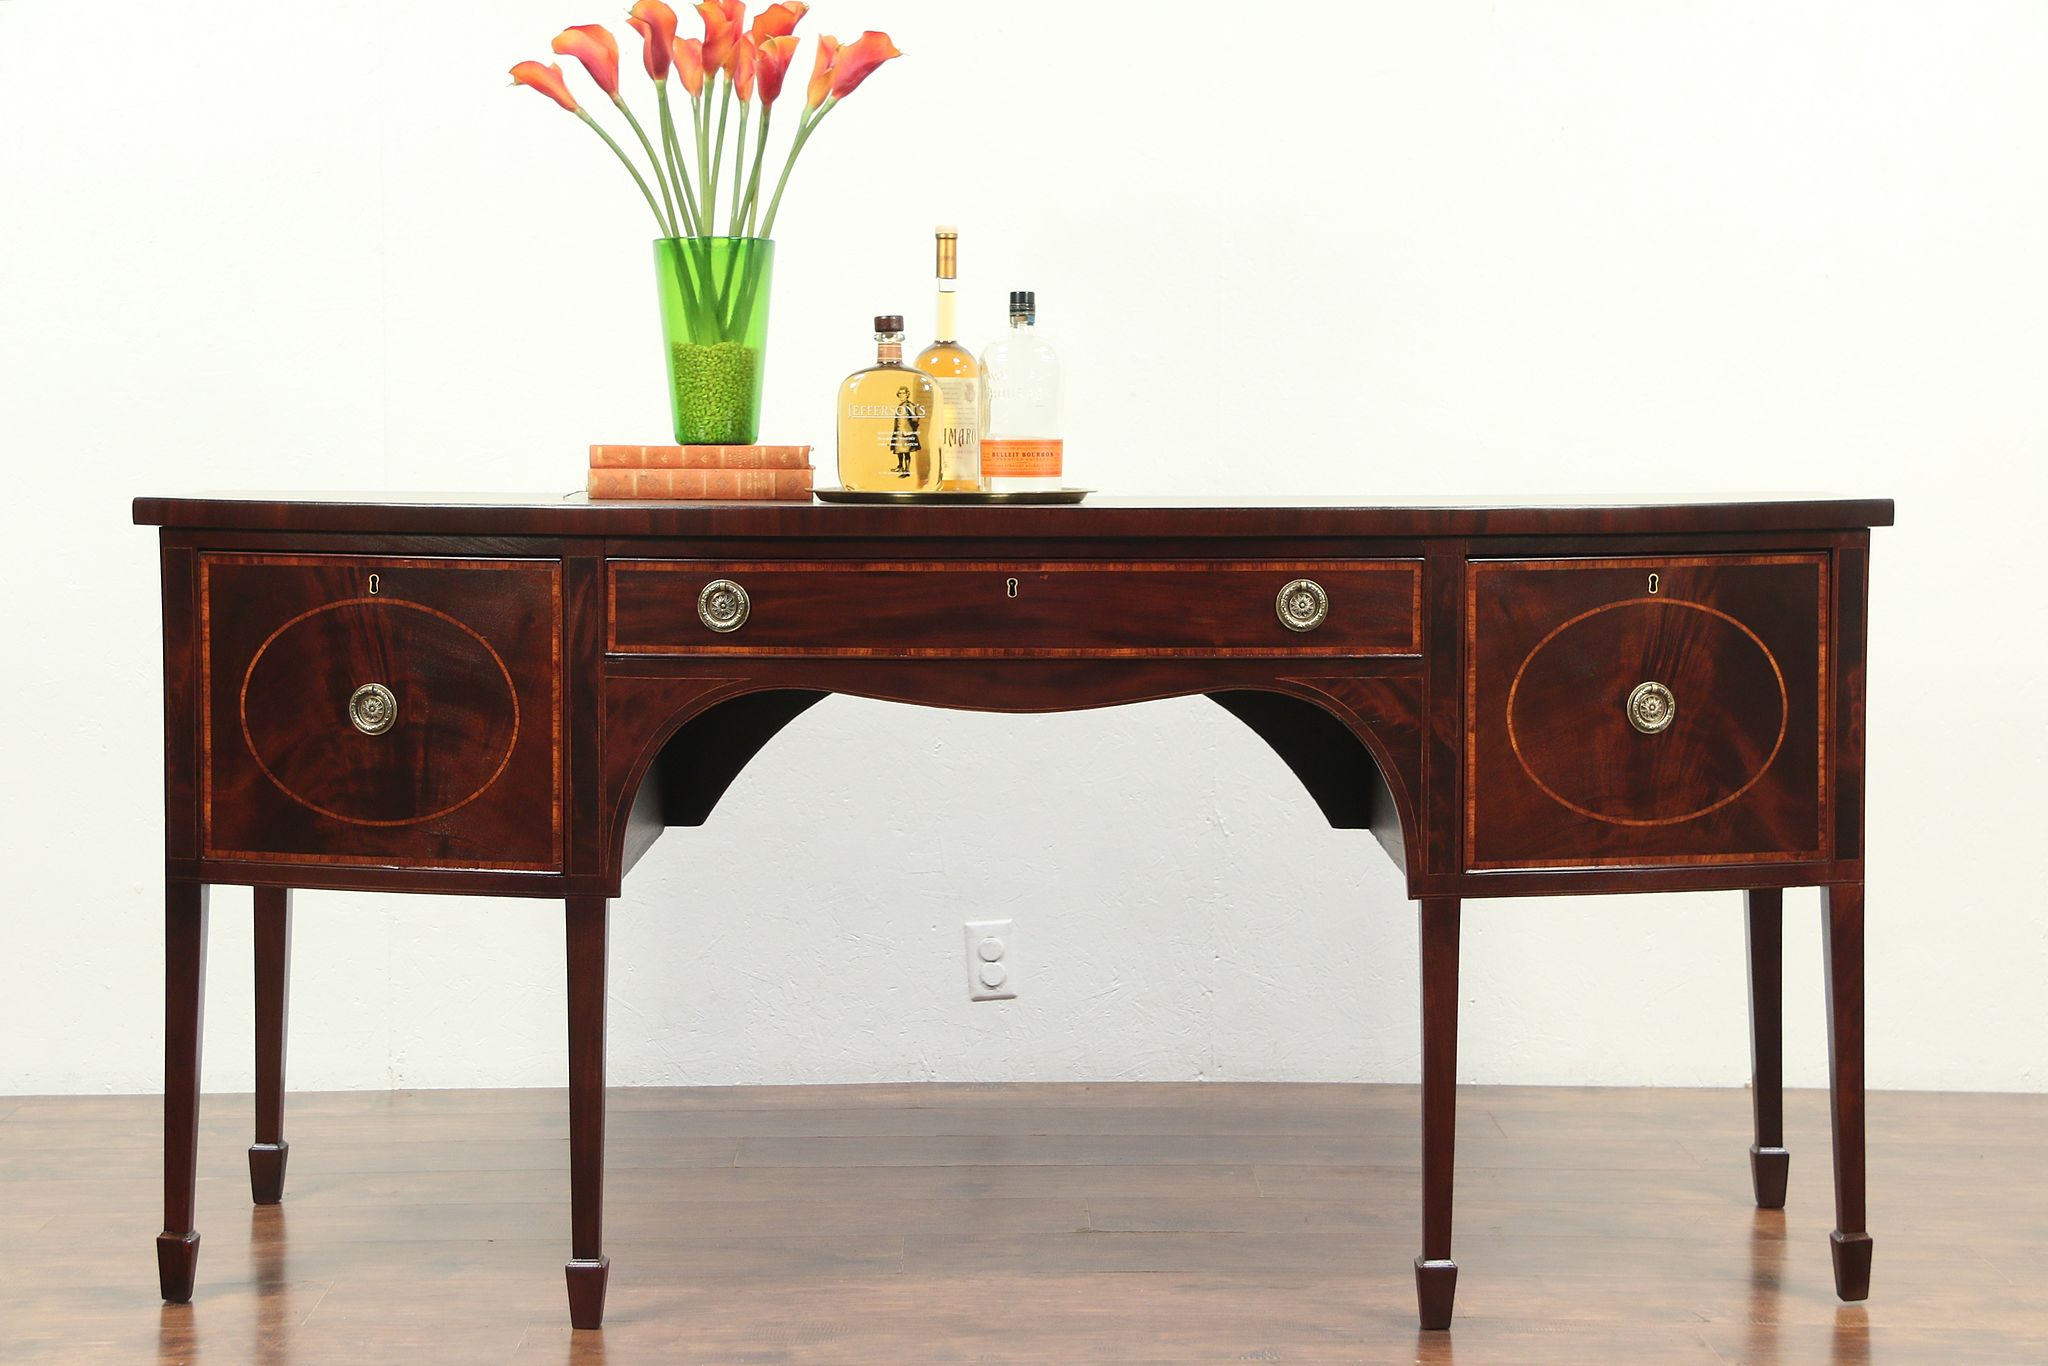 Sold Hepplewhite 1790 Antique Mahogany Sideboard Server Buffet Wine Drawer 28984 Harp Gallery Antiques Furniture